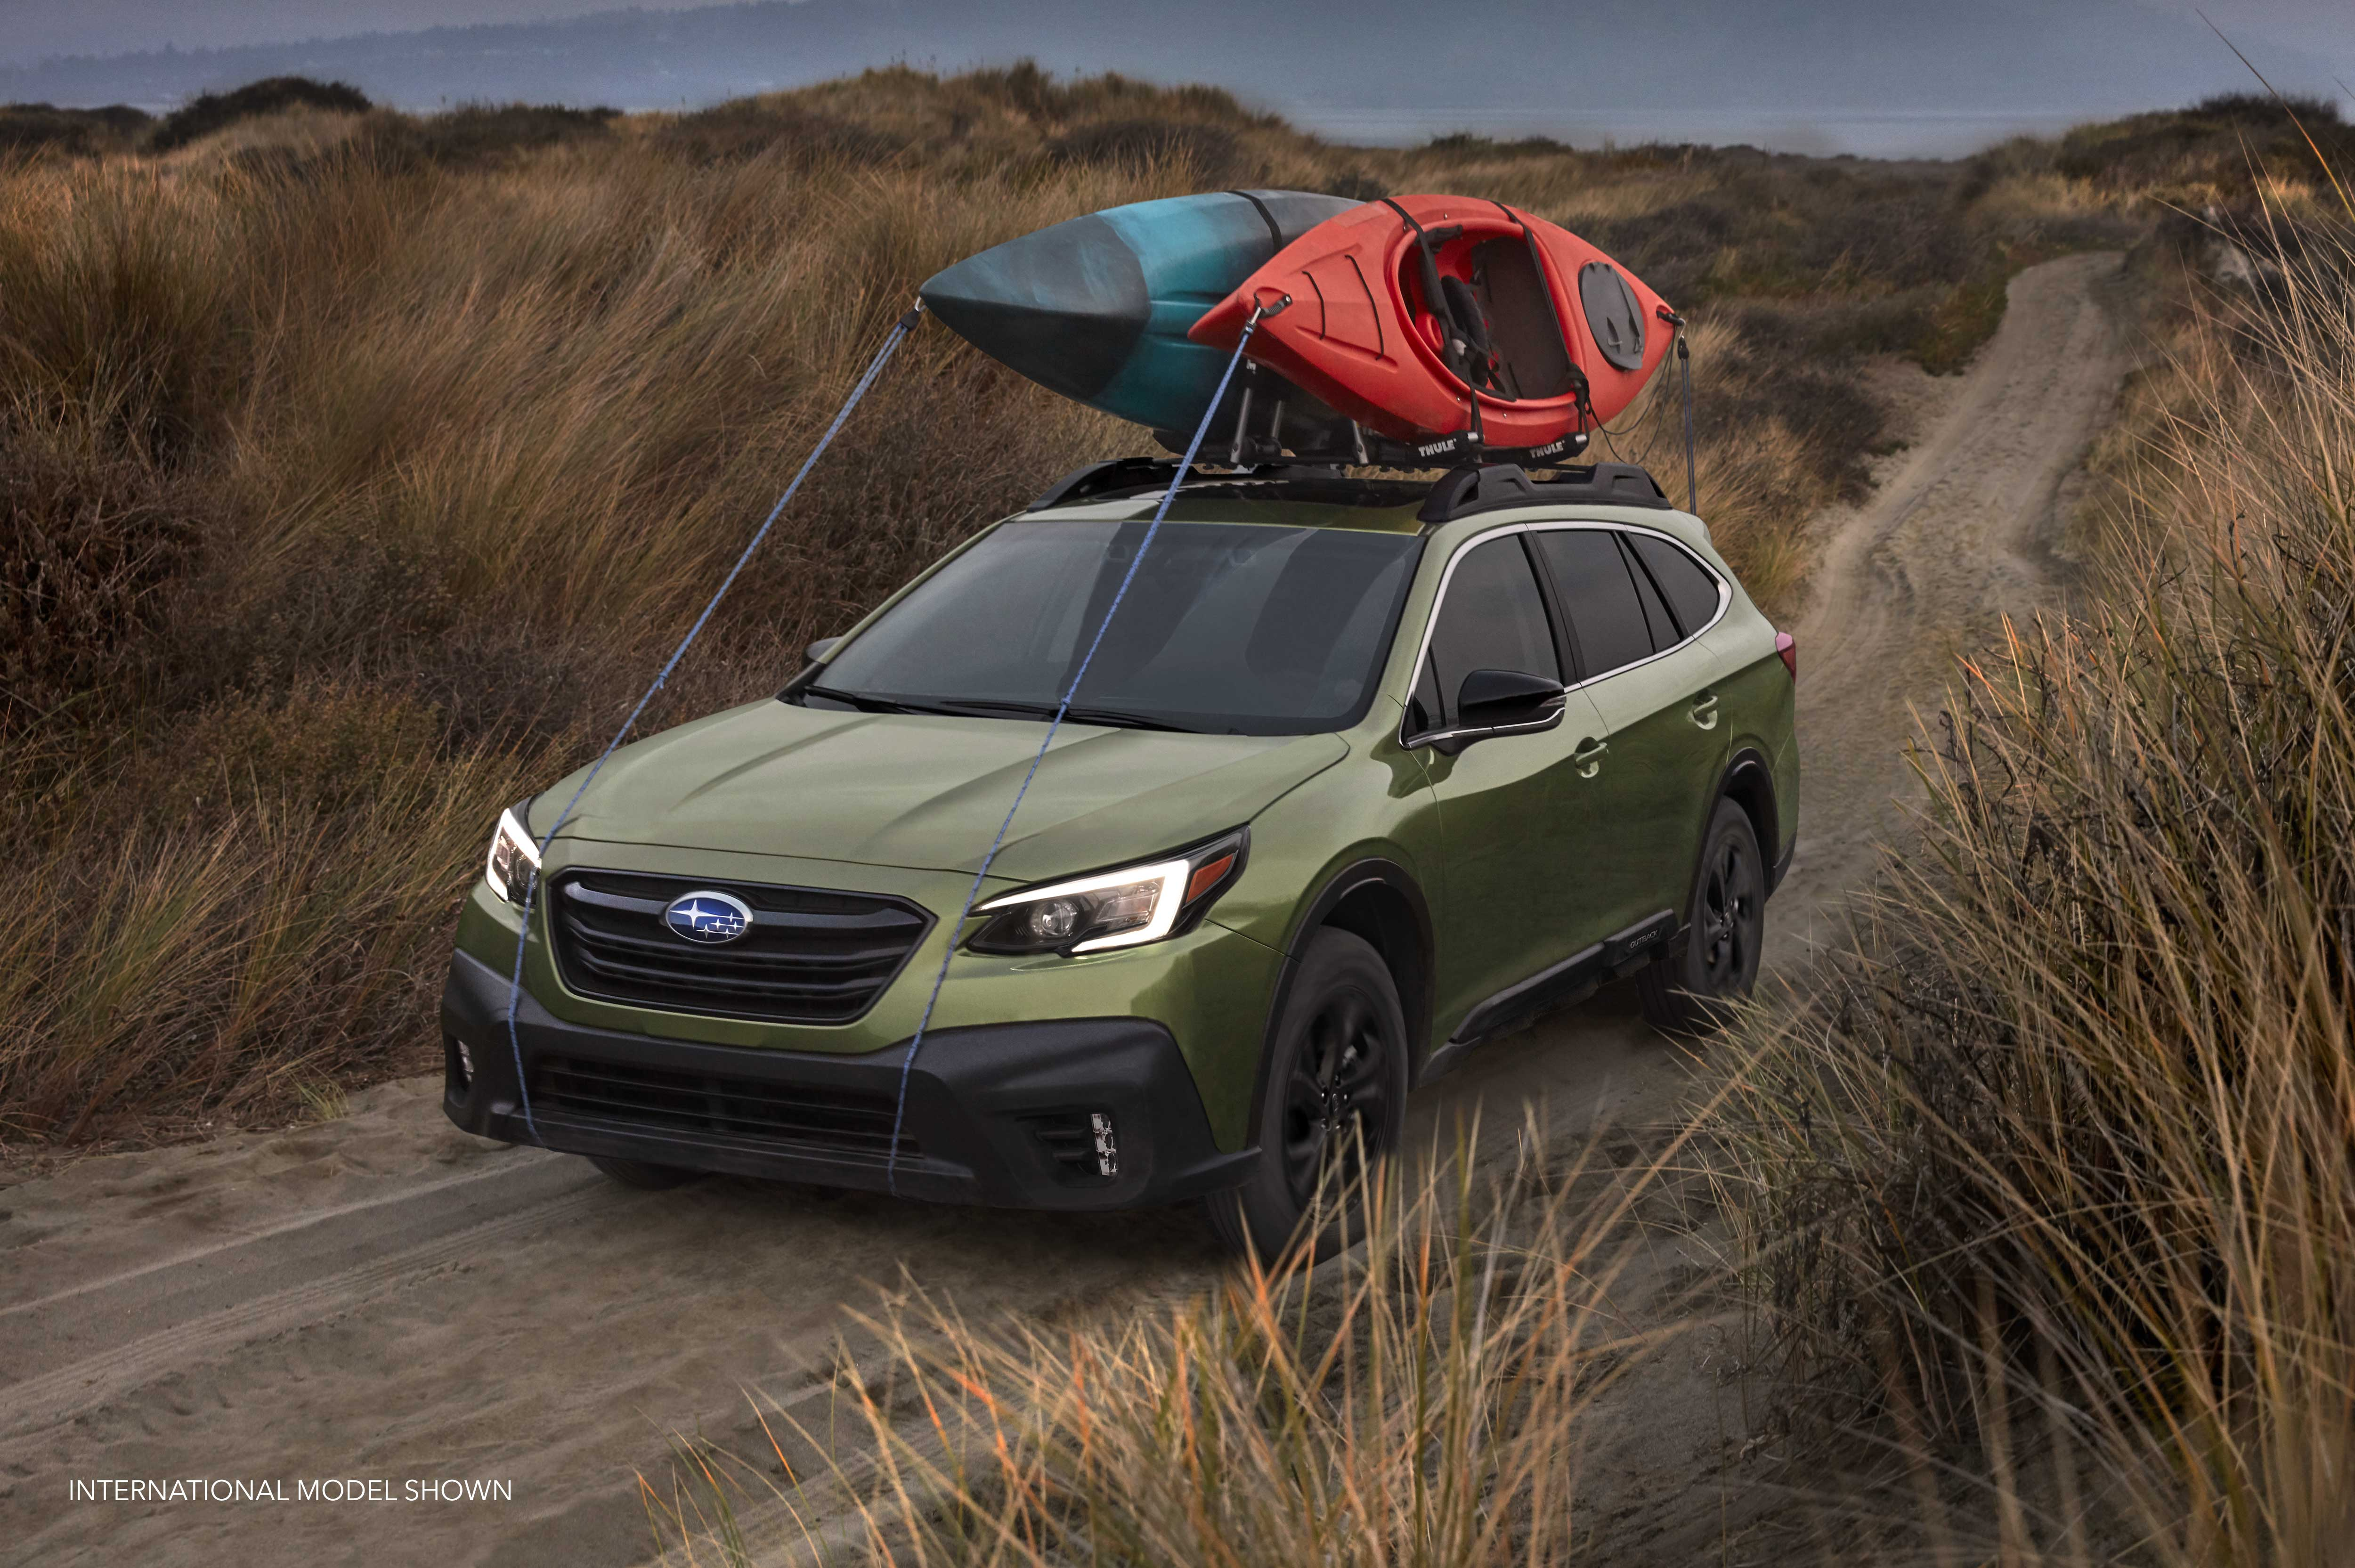 13 All New Subaru Plans For 2020 Concept for Subaru Plans For 2020